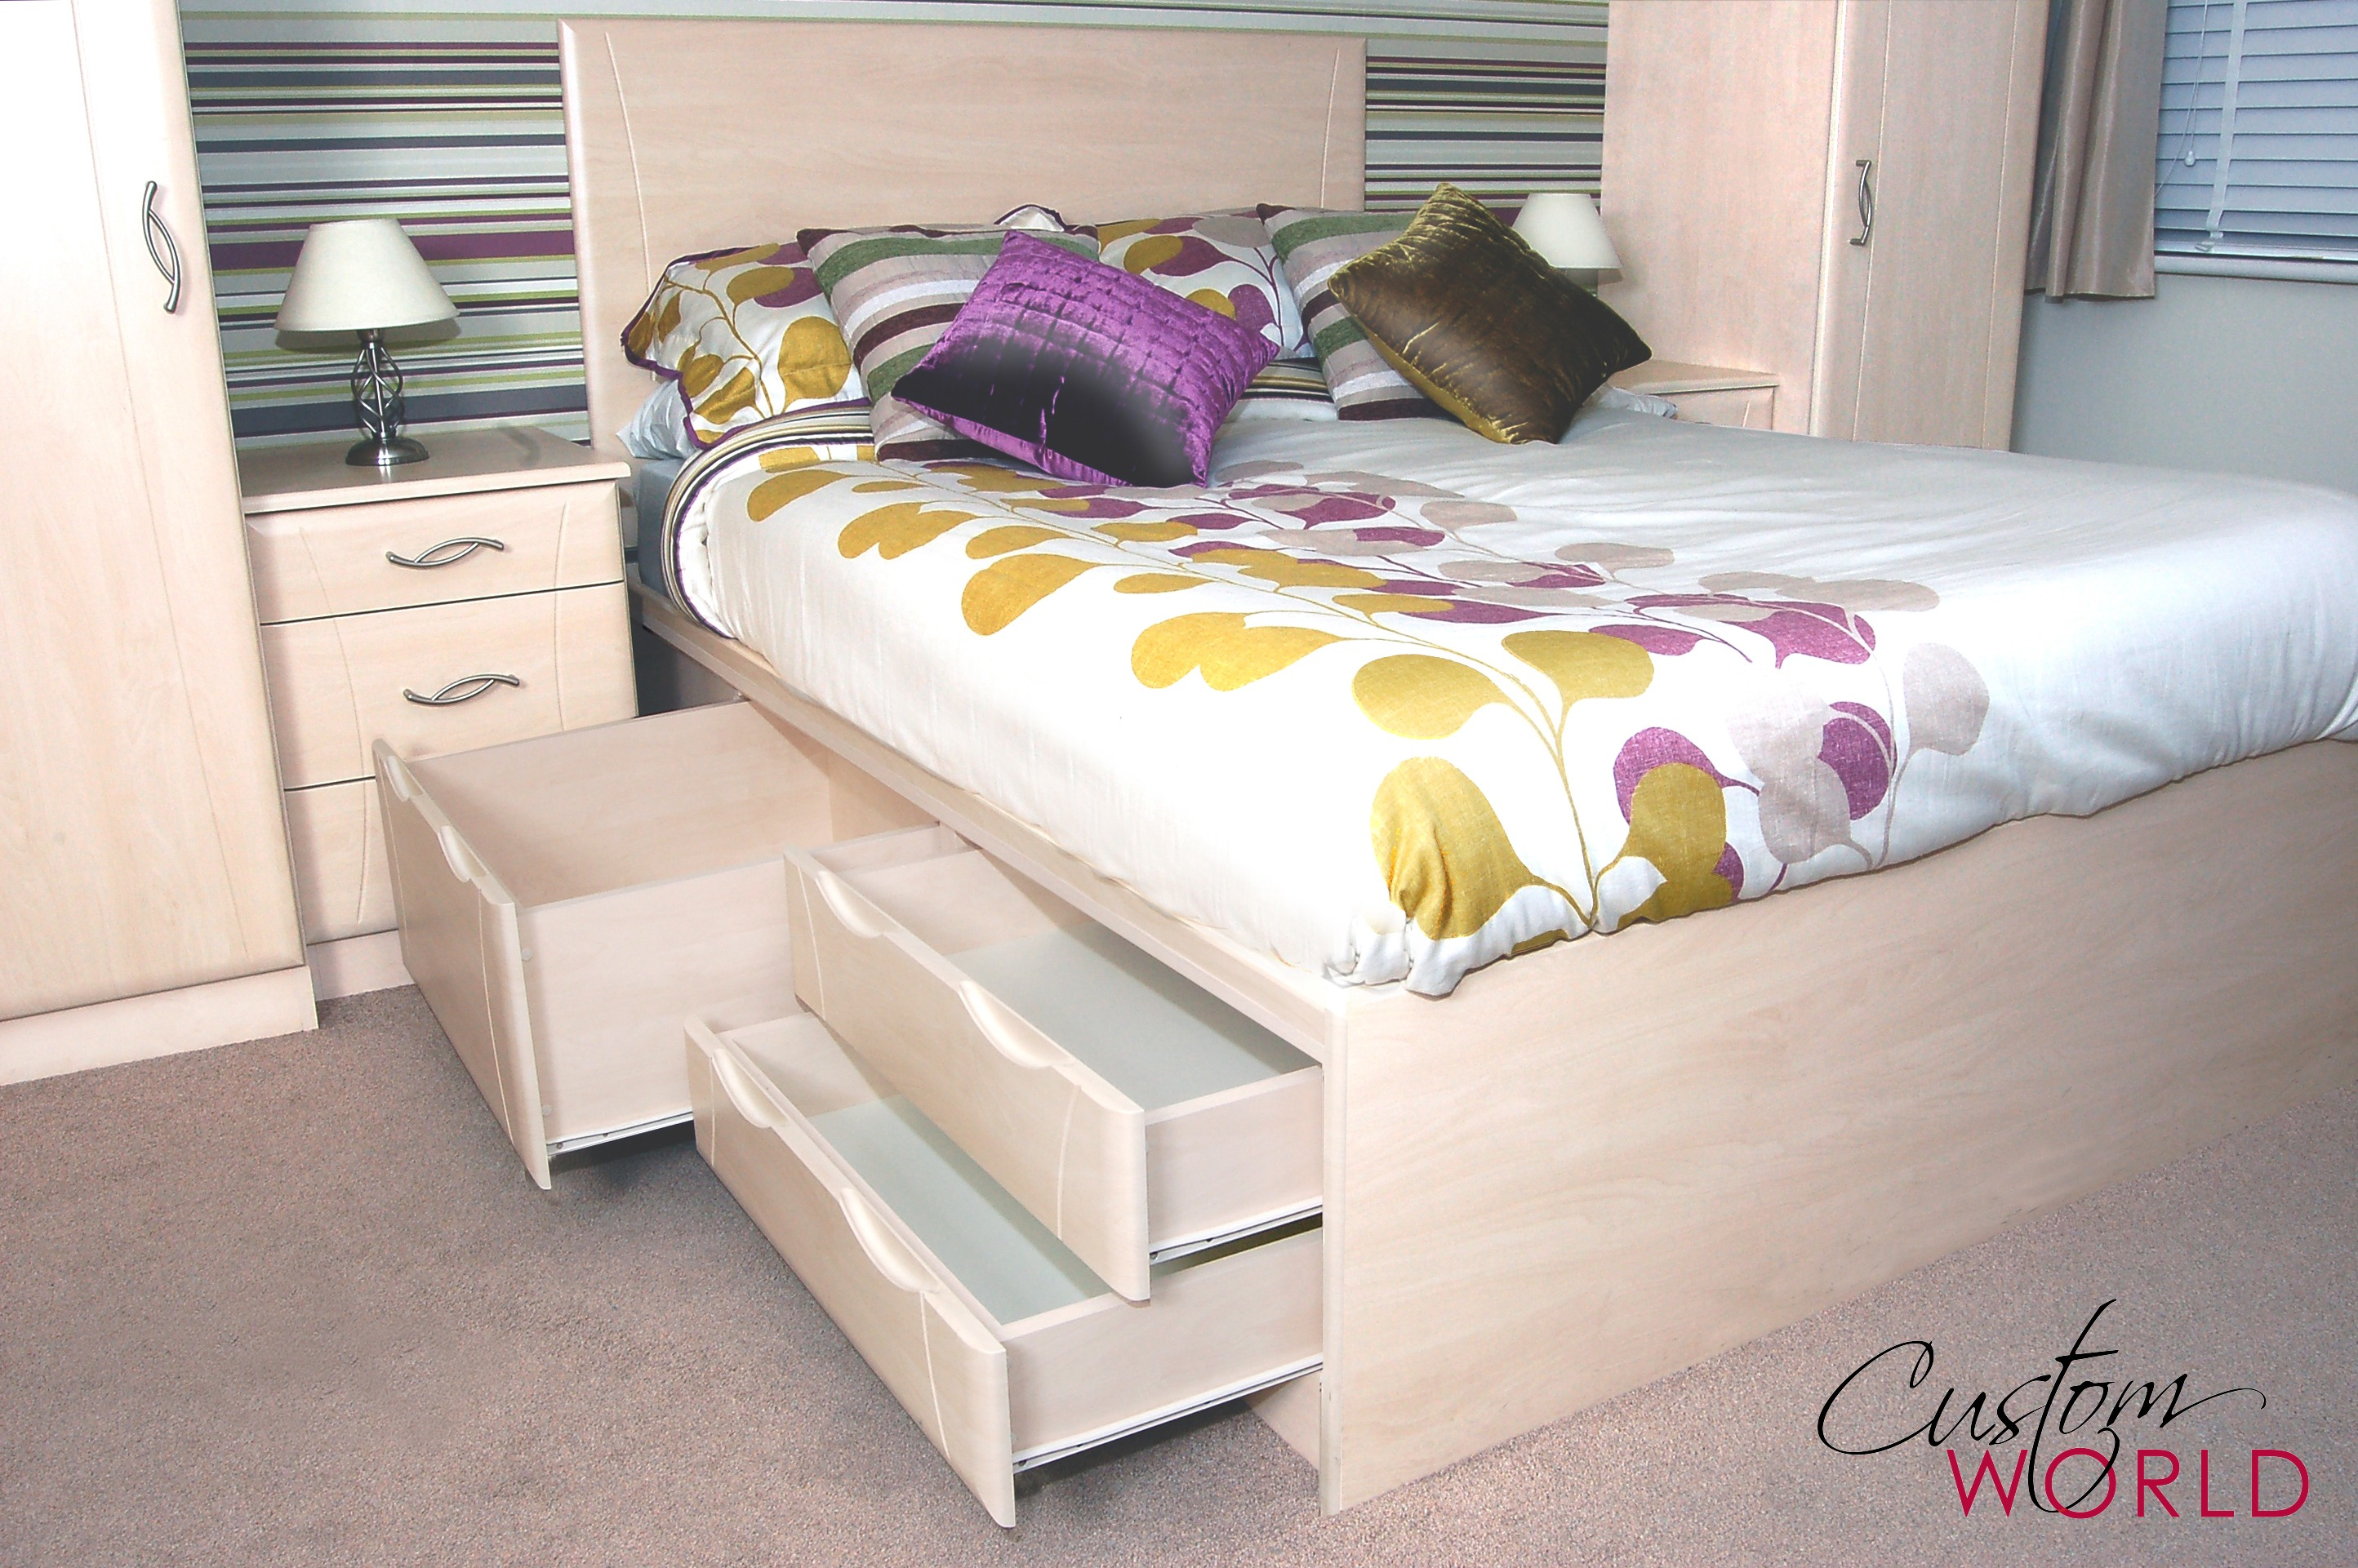 Made to measure bed built to any size with storage drawers